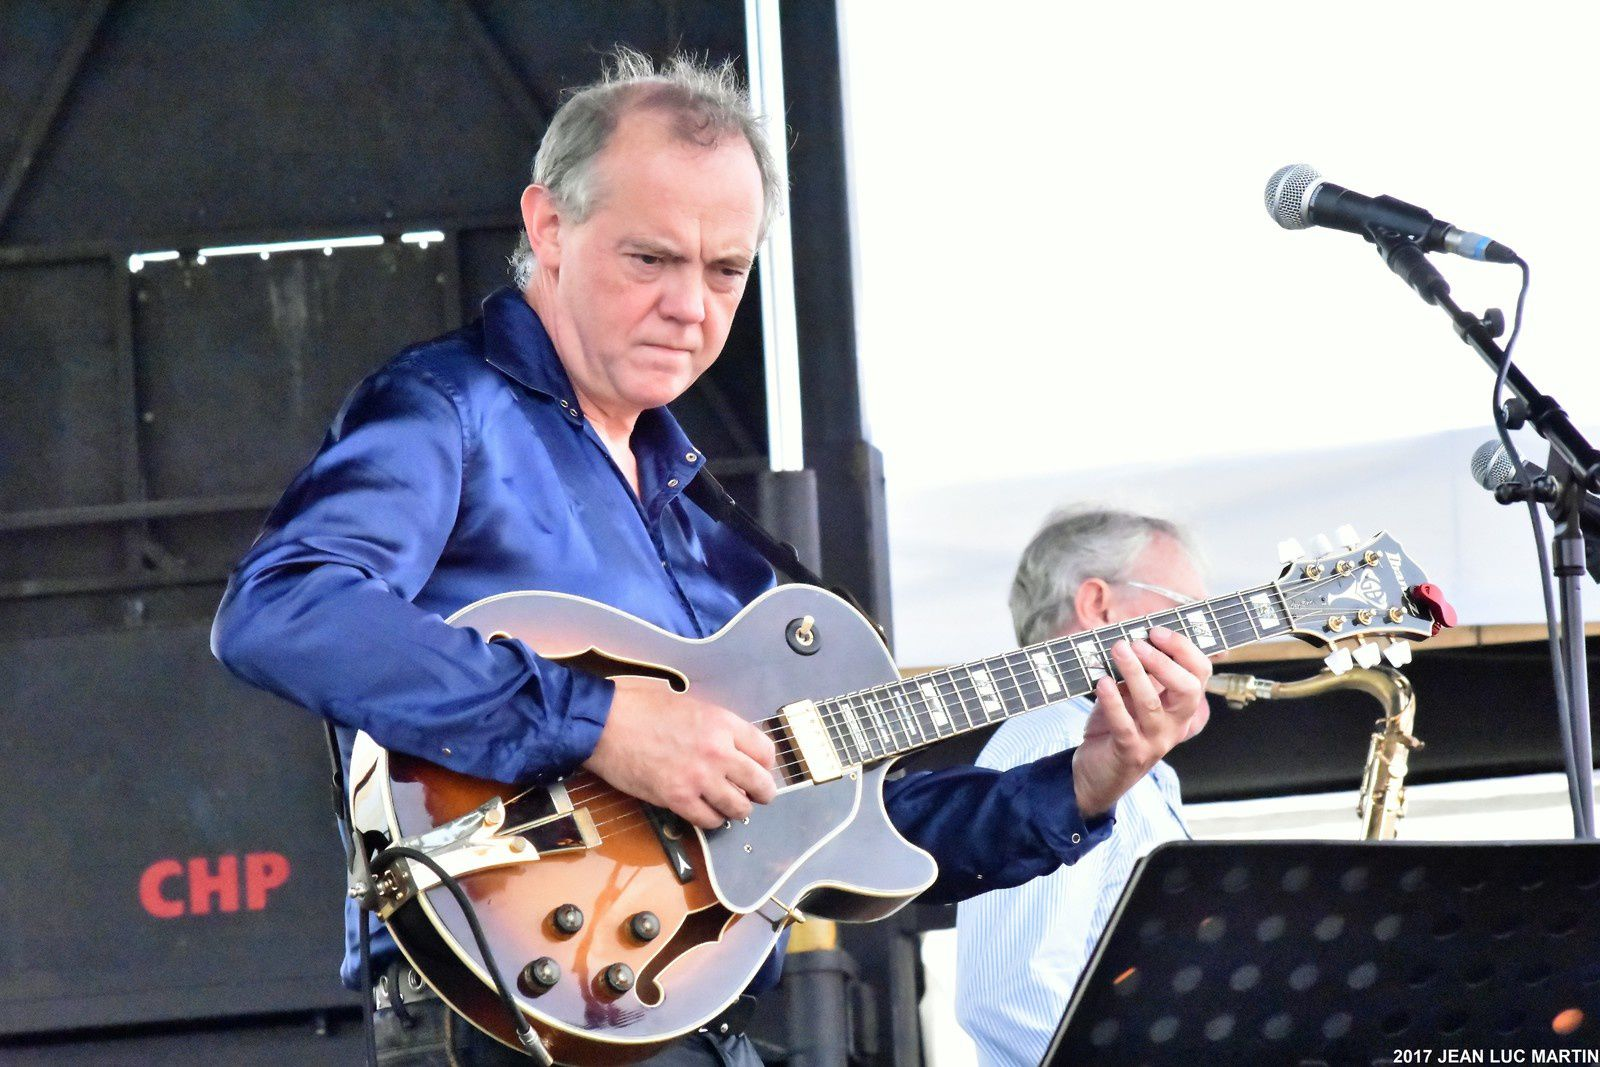 JEAN-MICHEL PROUST FLYING HOME A JAZZ IN MARCIAC LE 1ER/08/2017